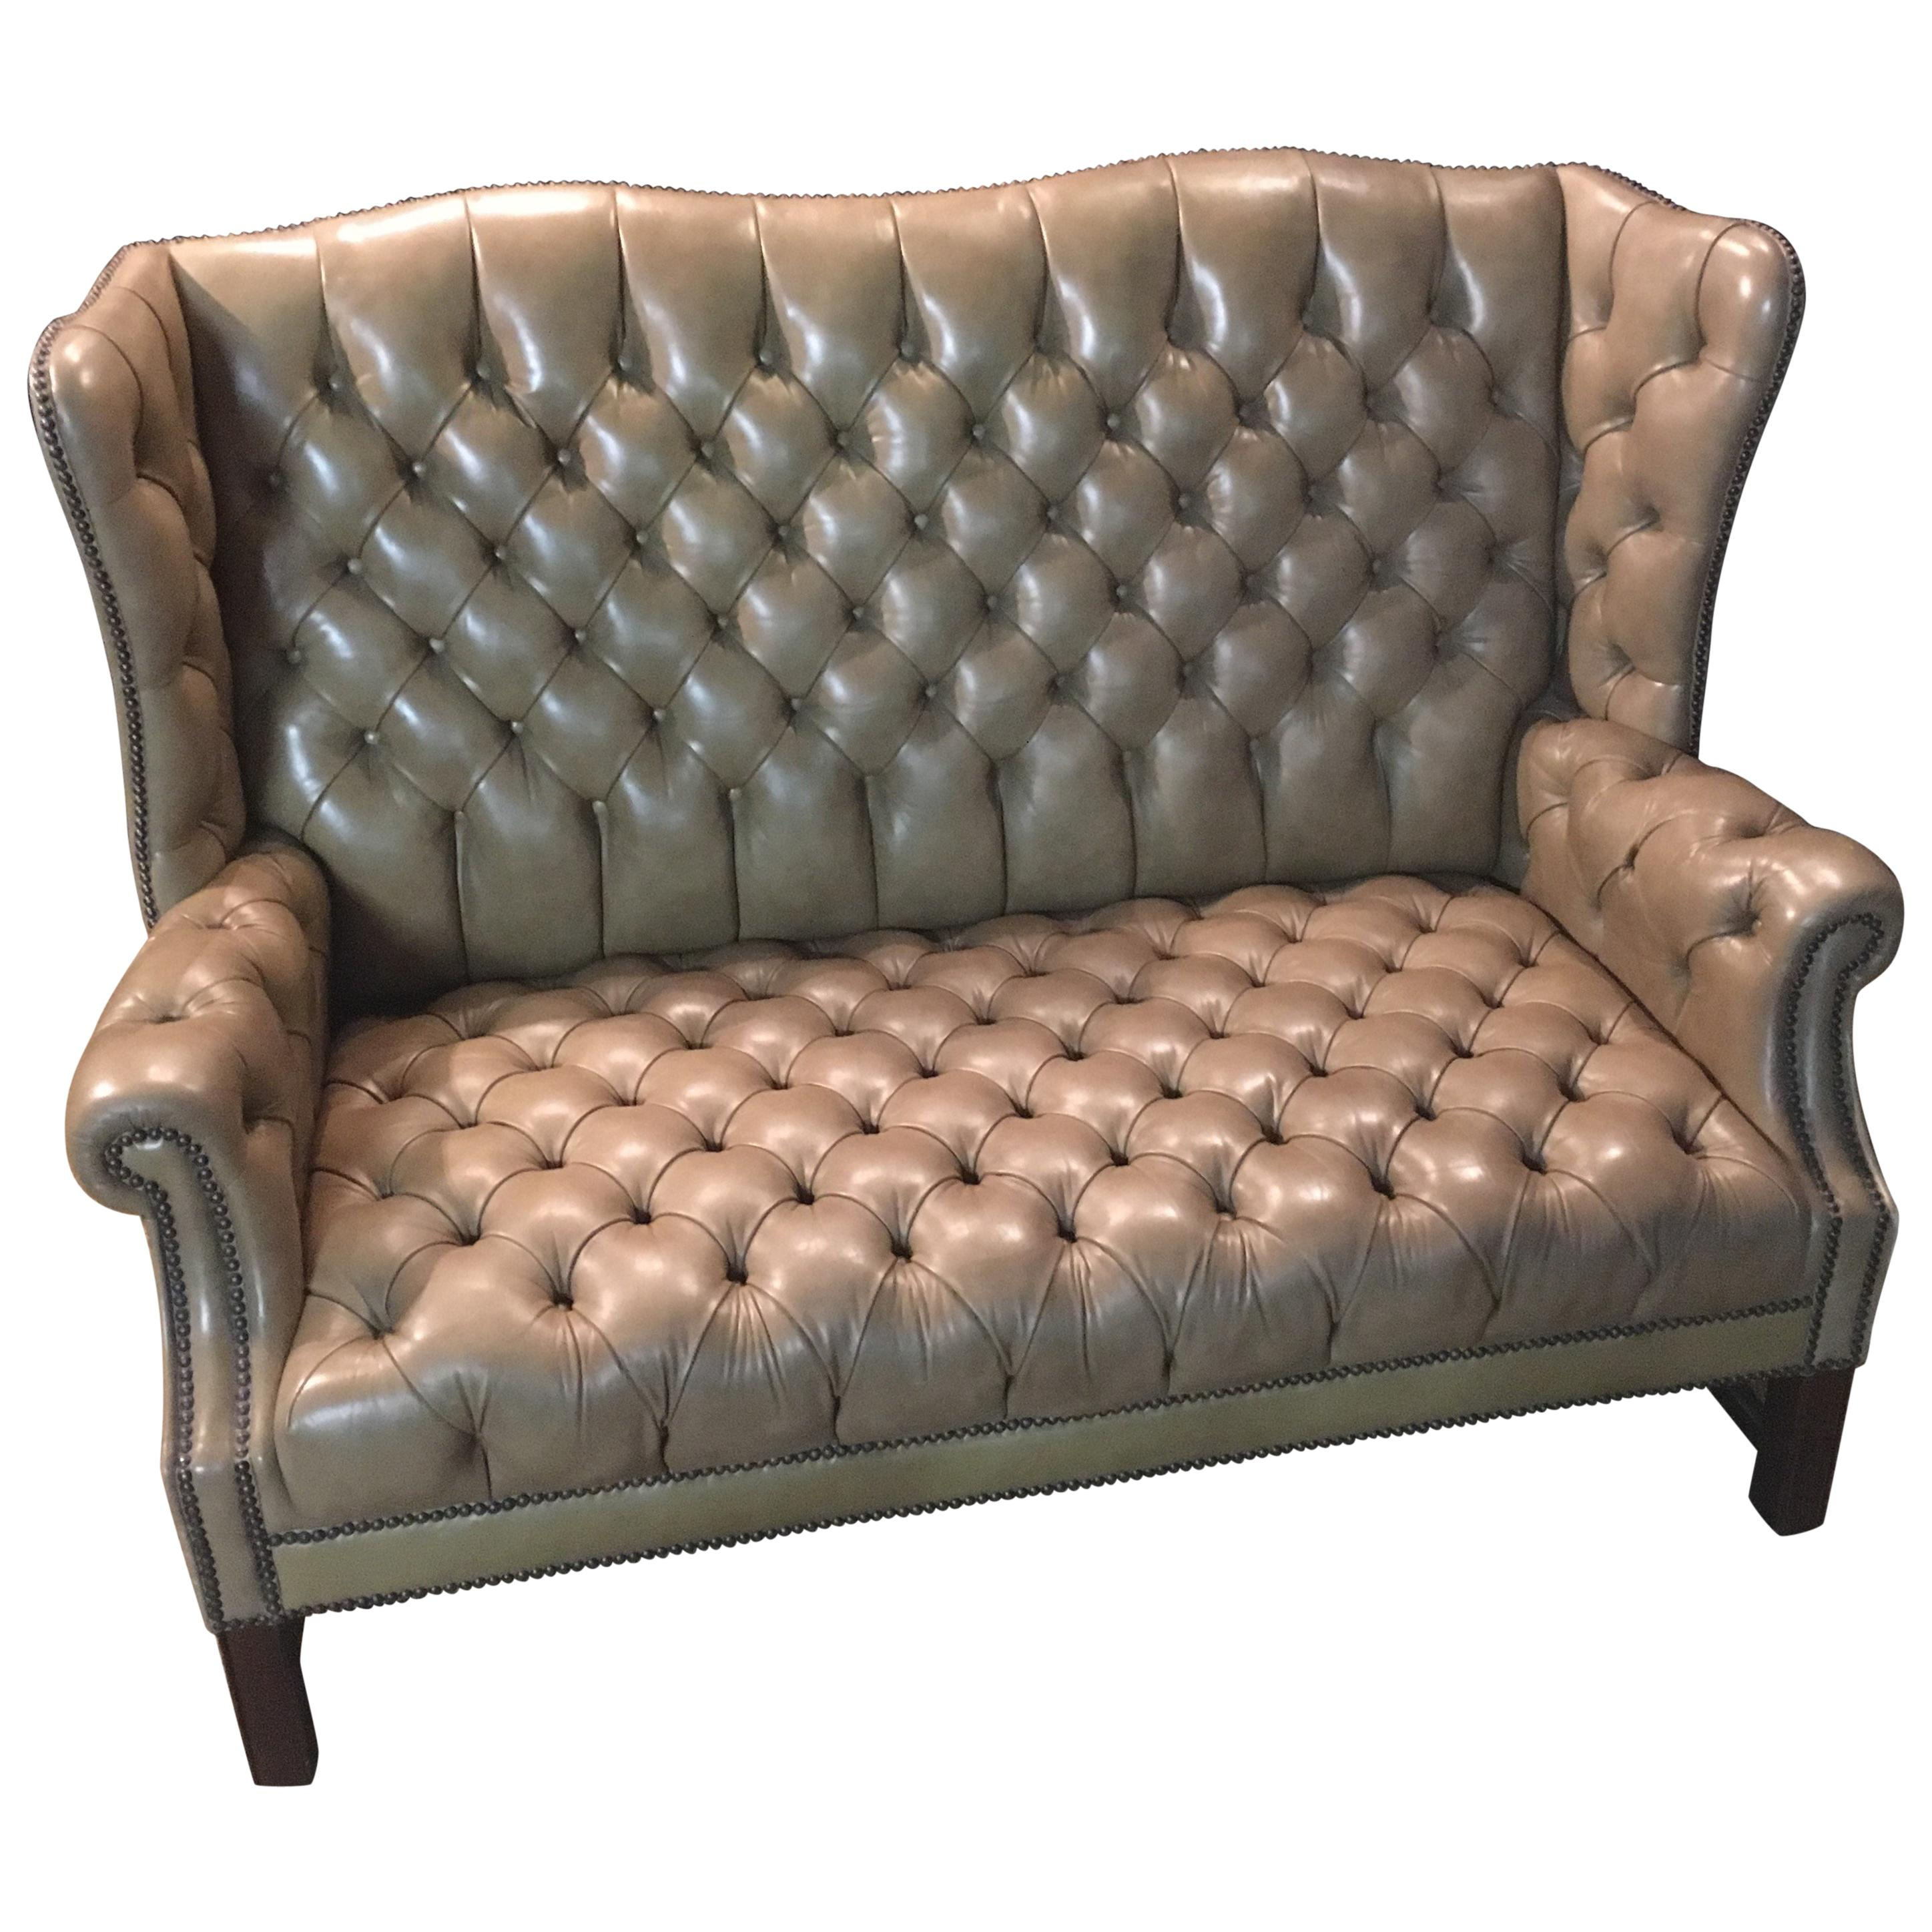 Chesterfield Sofa 2-Seater, High Back Top Condition For Sale at 1stdibs